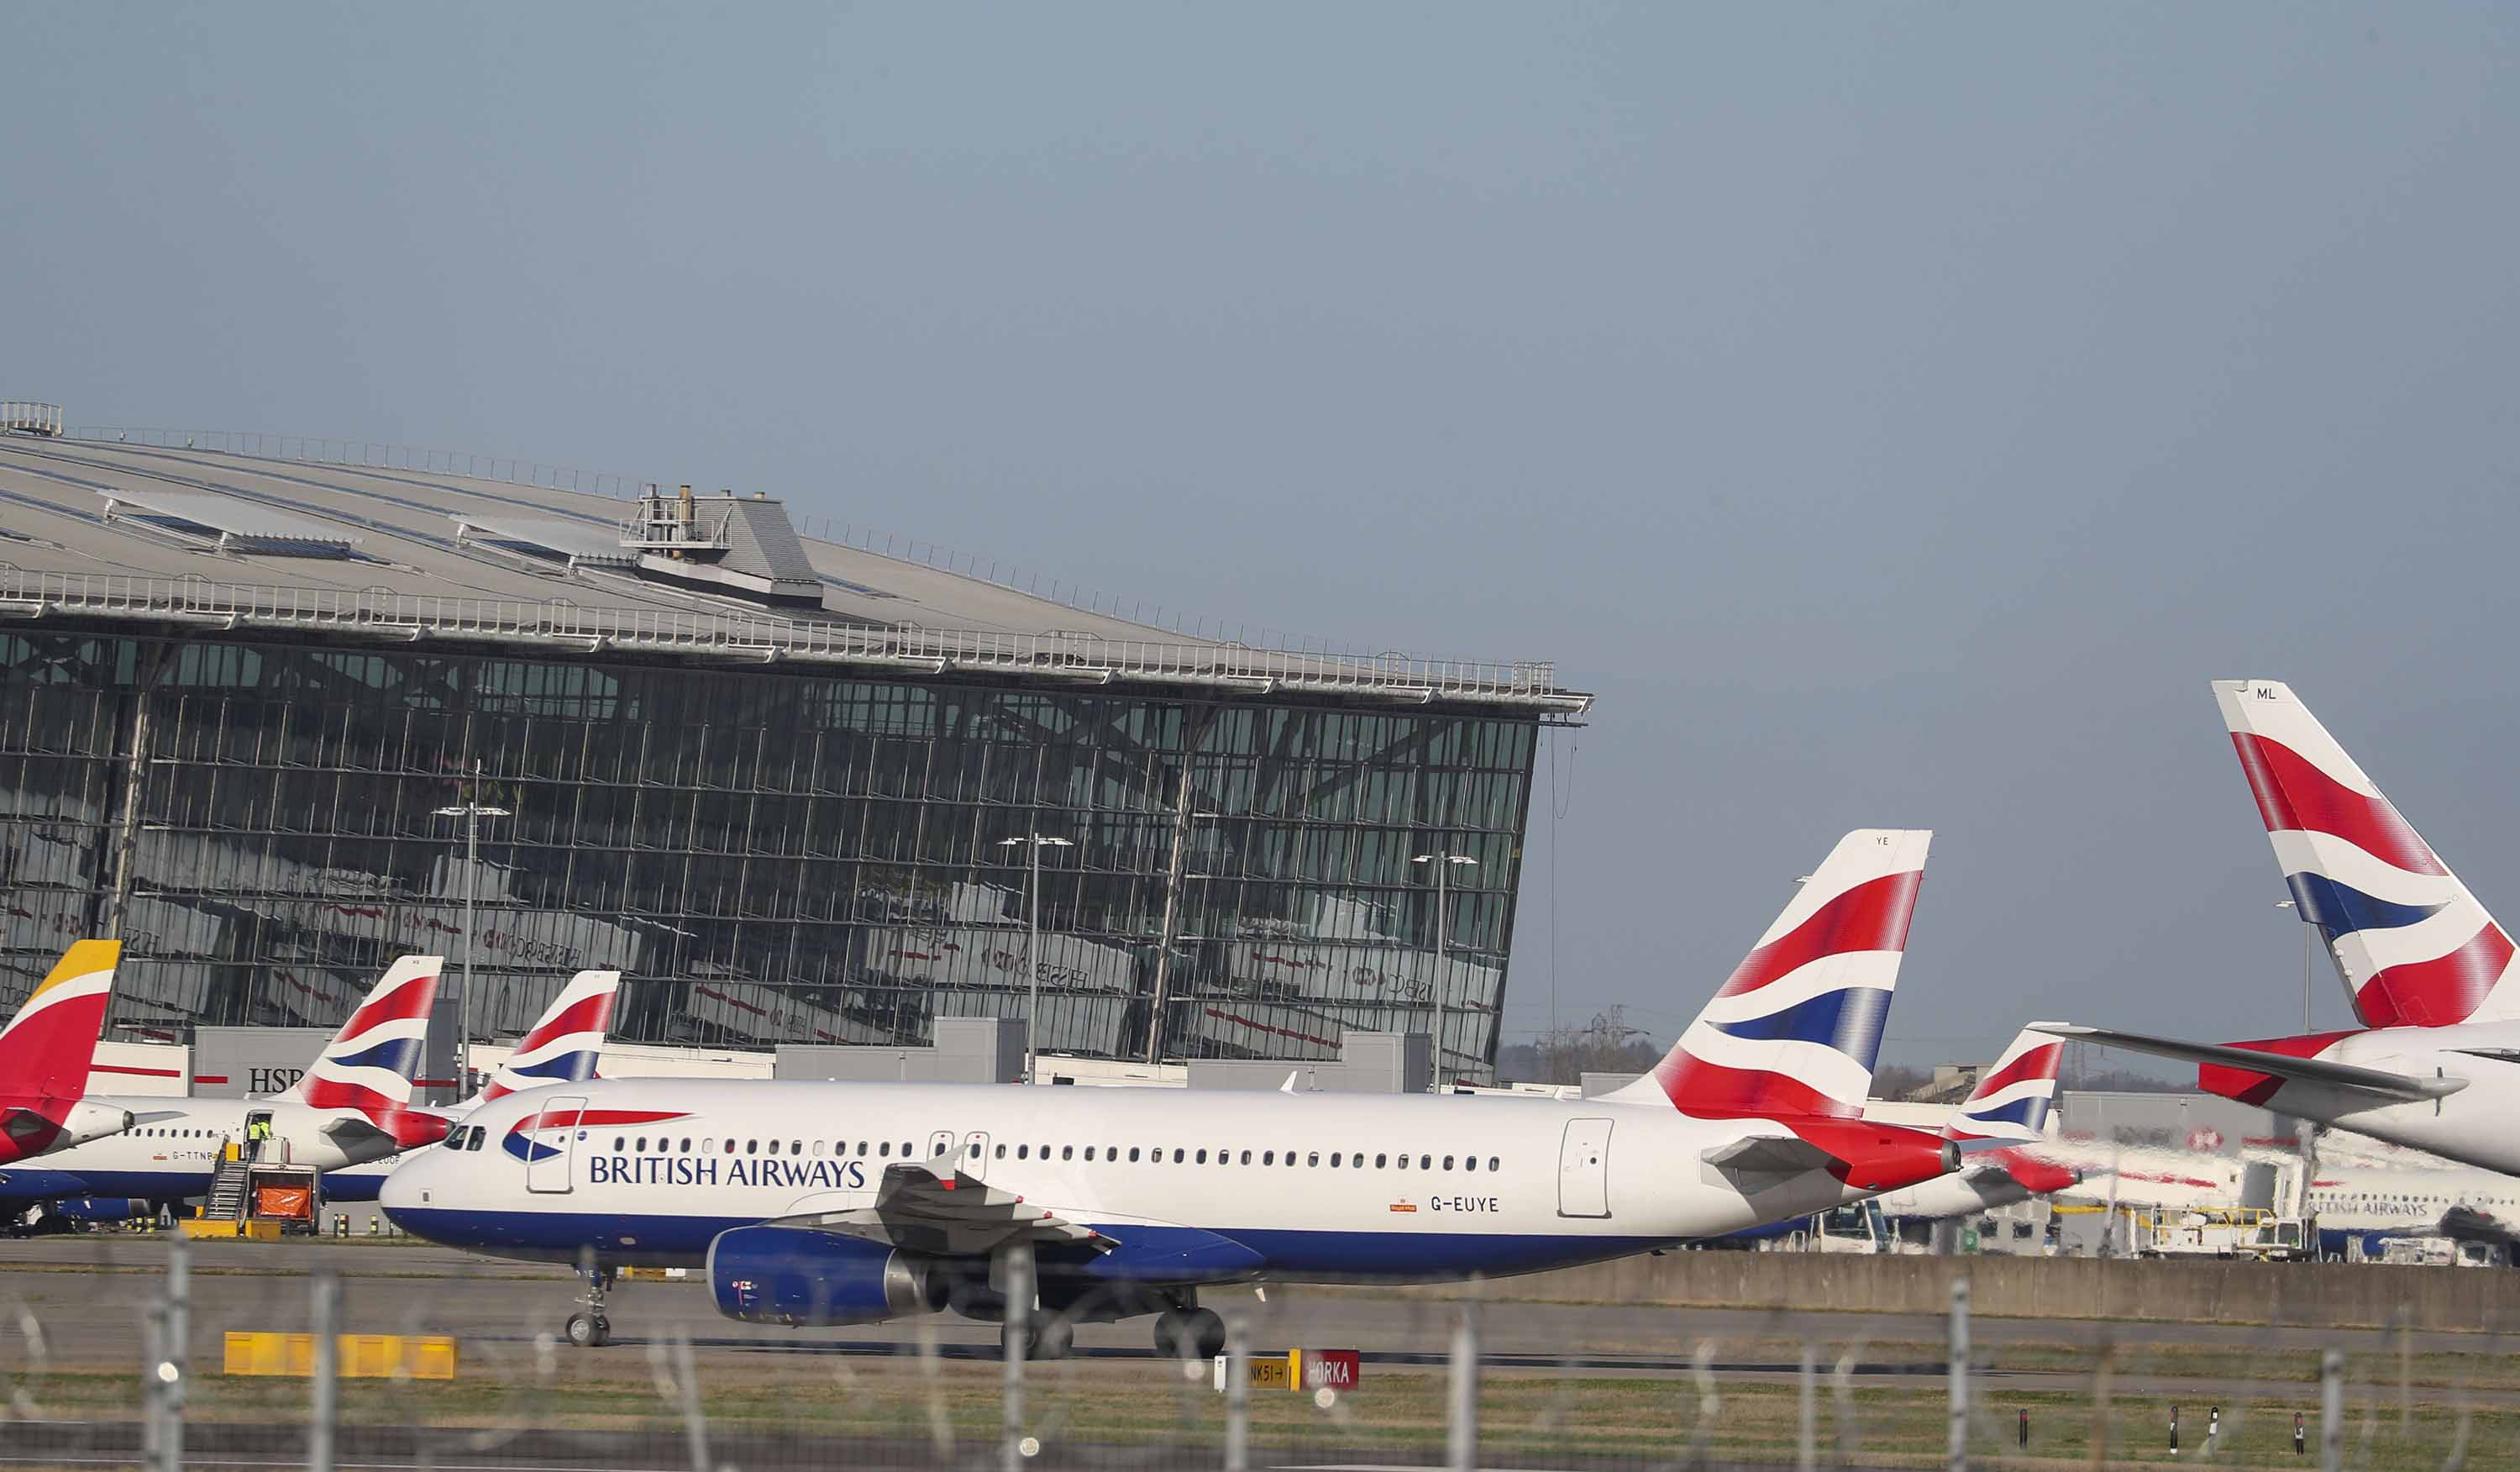 British Airways planes are seen at London's Heathrow Airport in January.